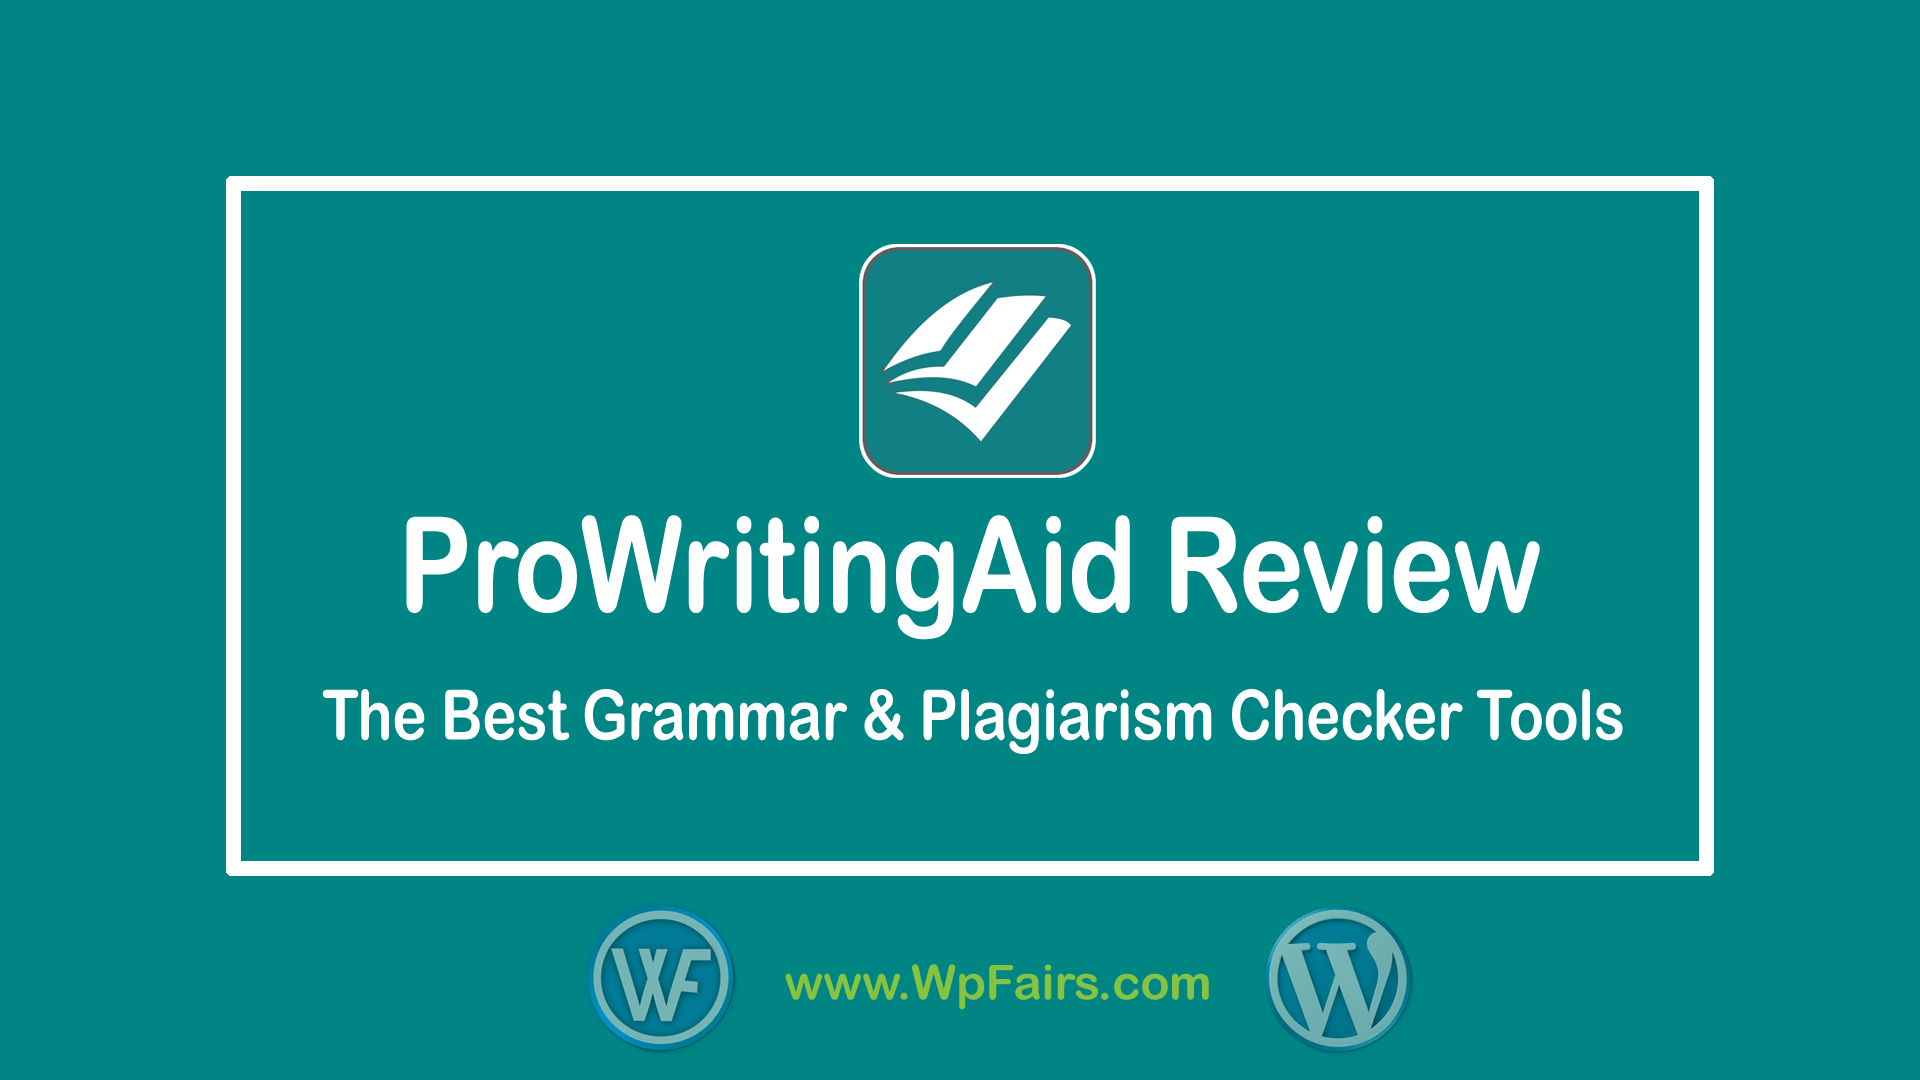 ProWritingAid Review - The Best Grammar And Plagiarism Checker Tools